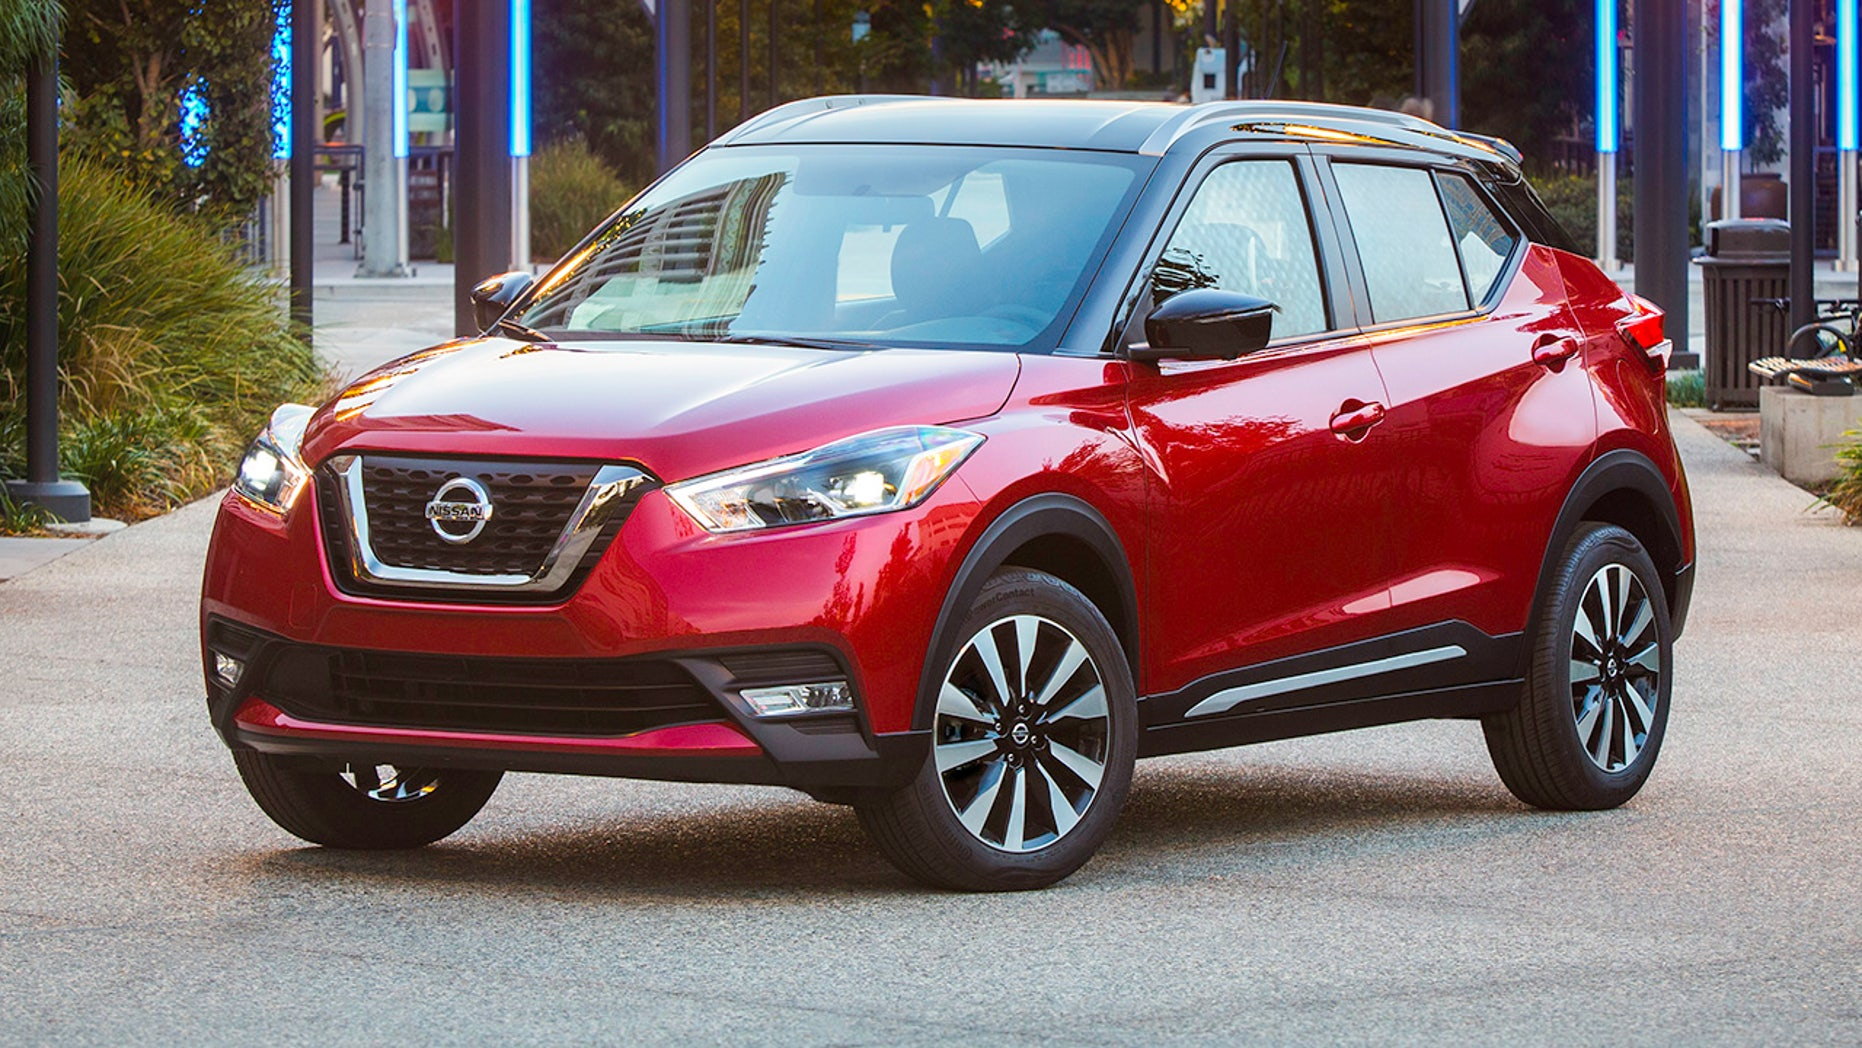 2018 Nissan Kicks Test Drive: It shouldn't be good, but it is | Fox News